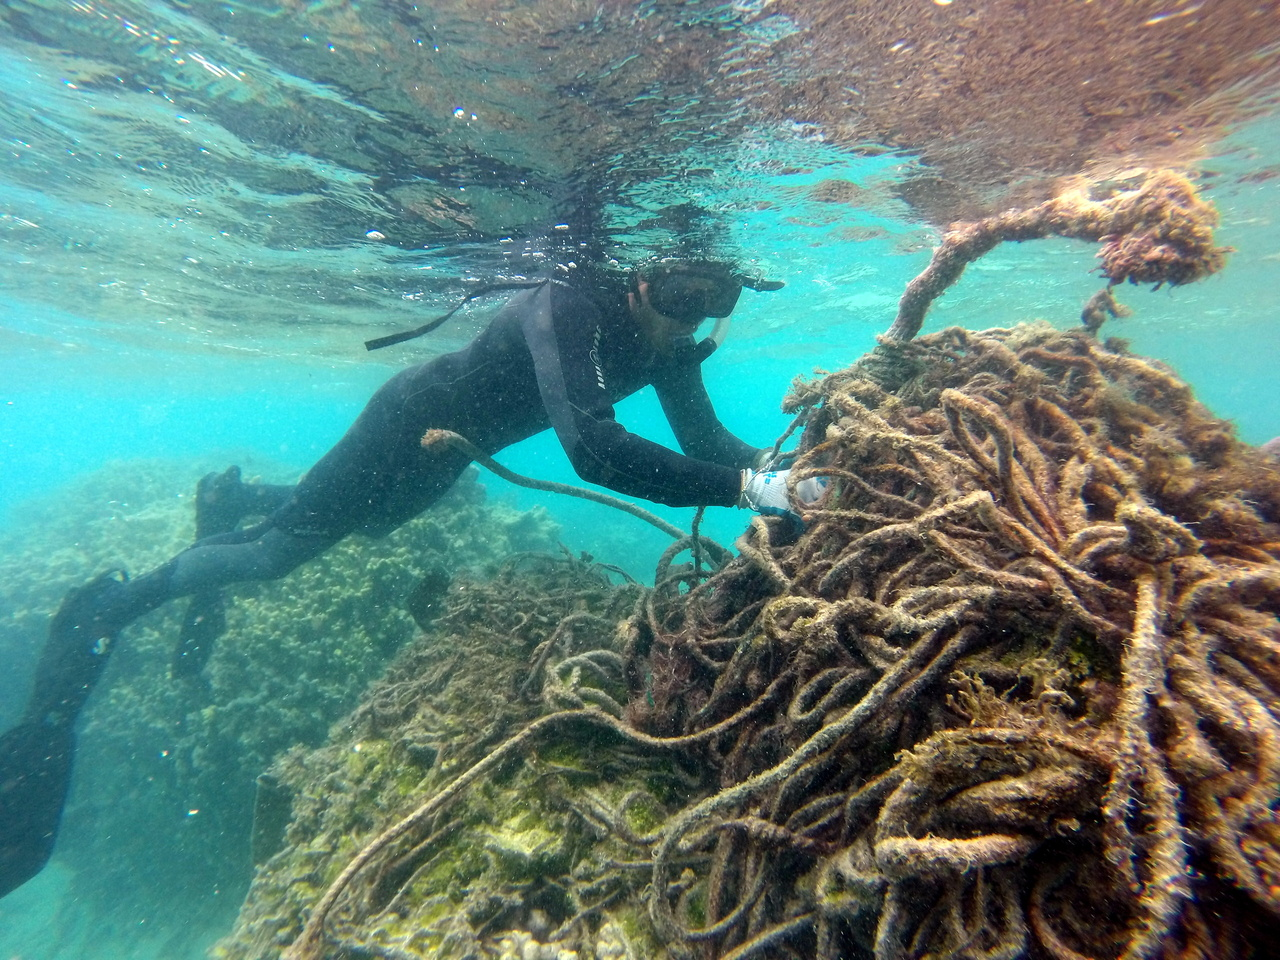 A marine debris diver carefully cuts a derelict fishing net to remove it from the shallow coral reef